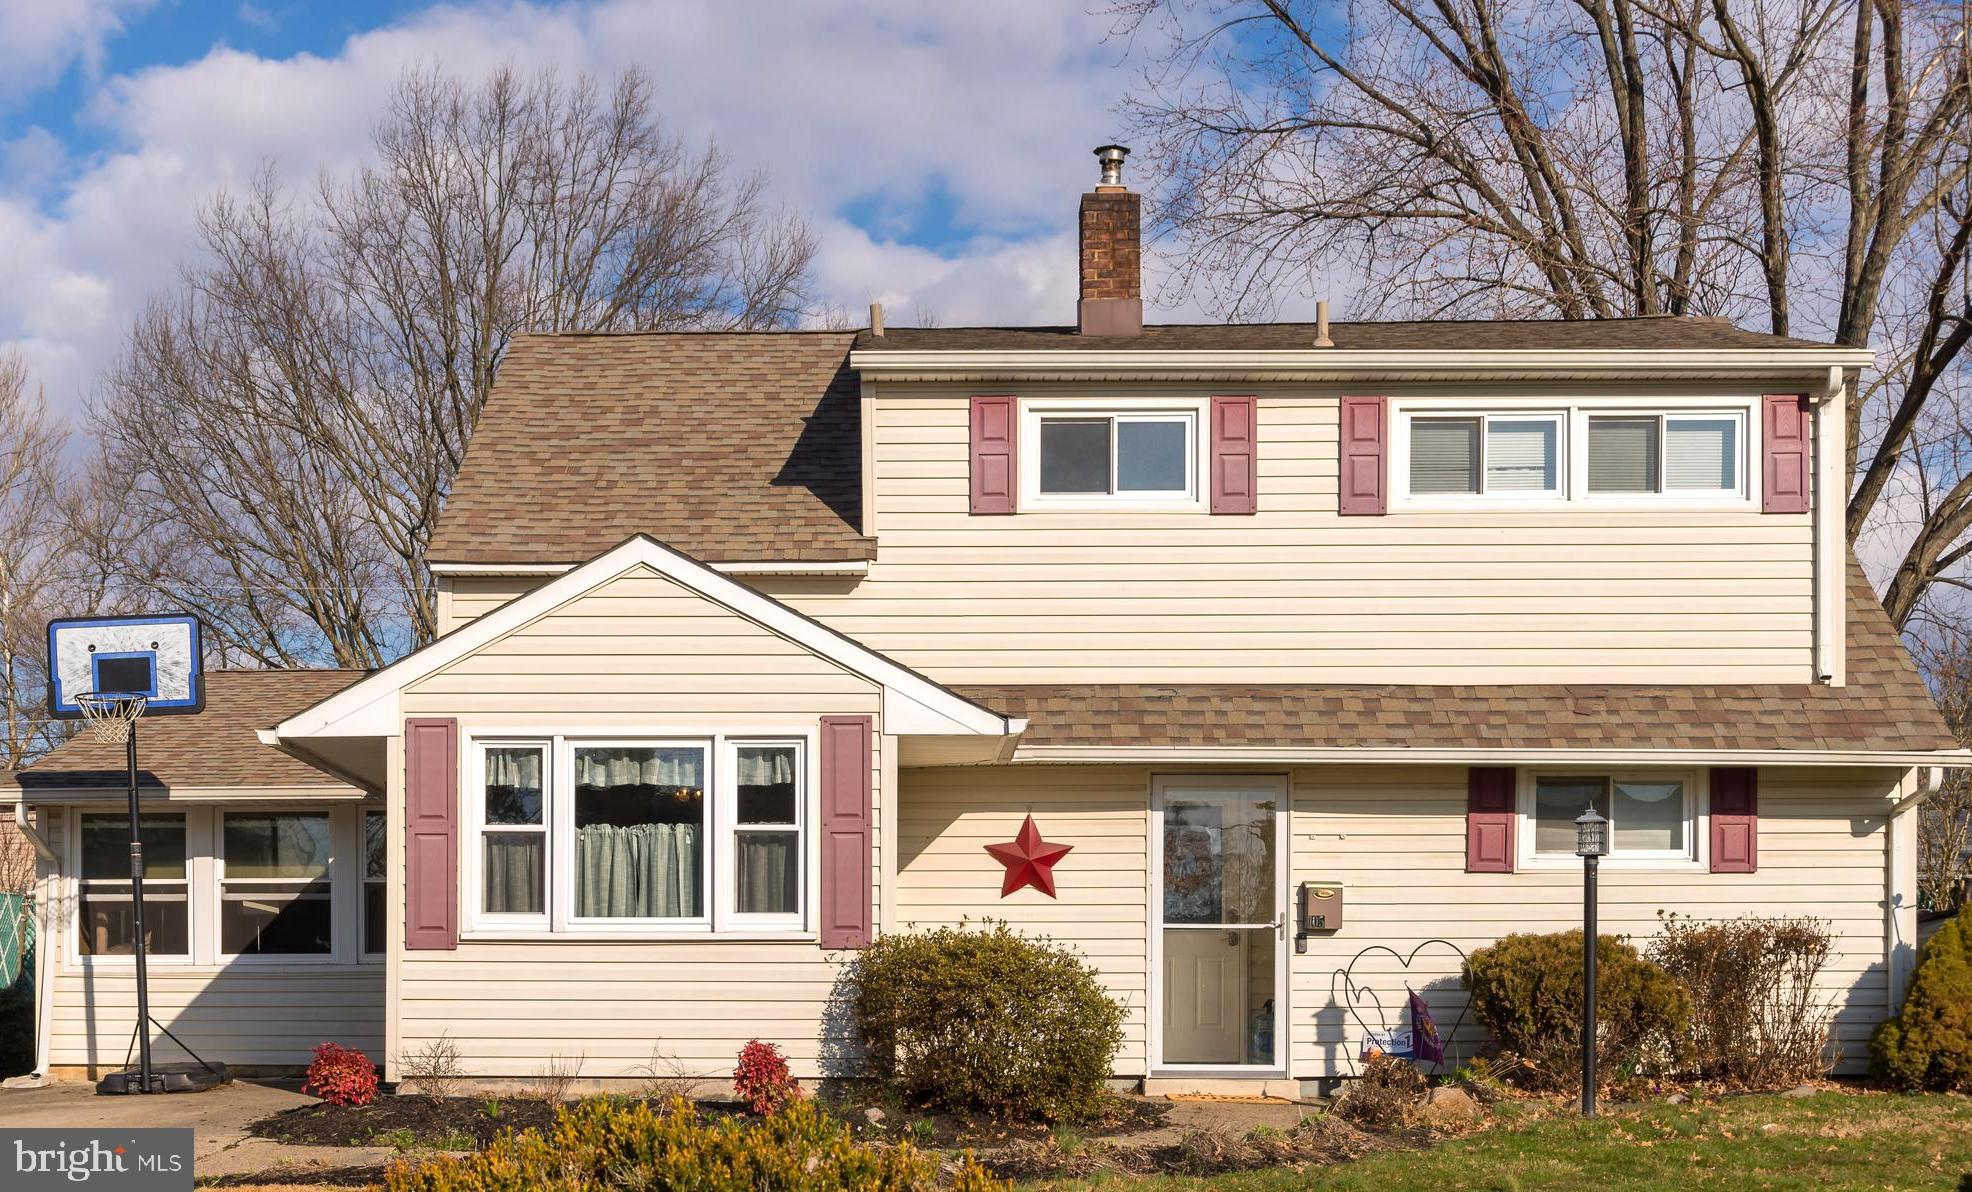 105 EVERTURN LANE, LEVITTOWN, PA 19054